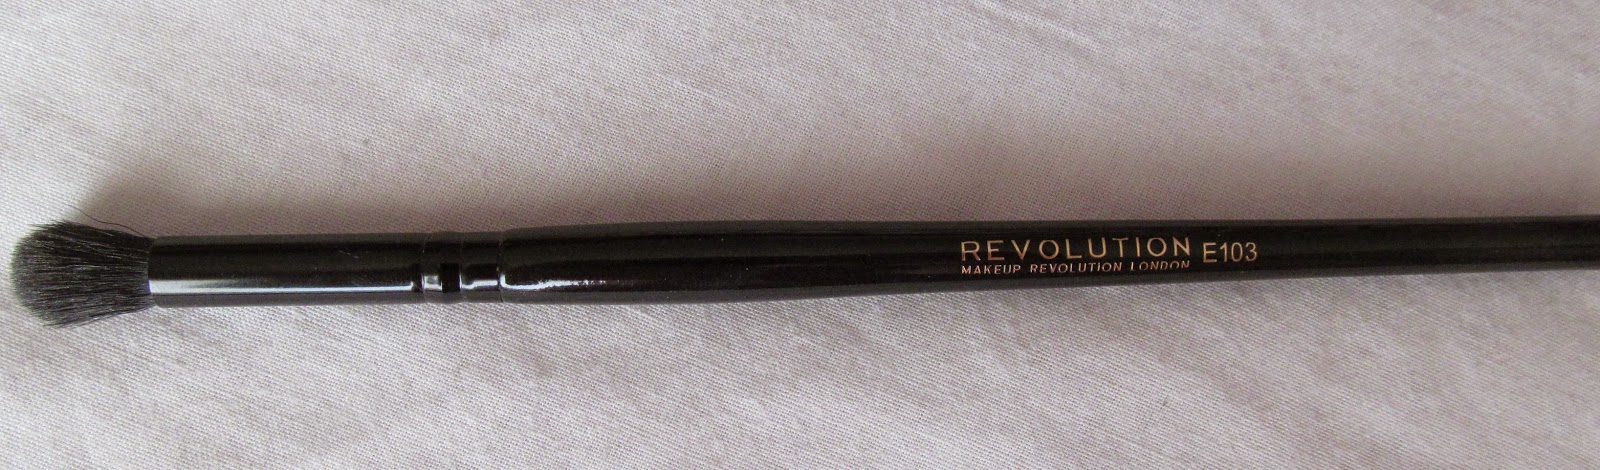 makeup revolution eyeshadow blending brush